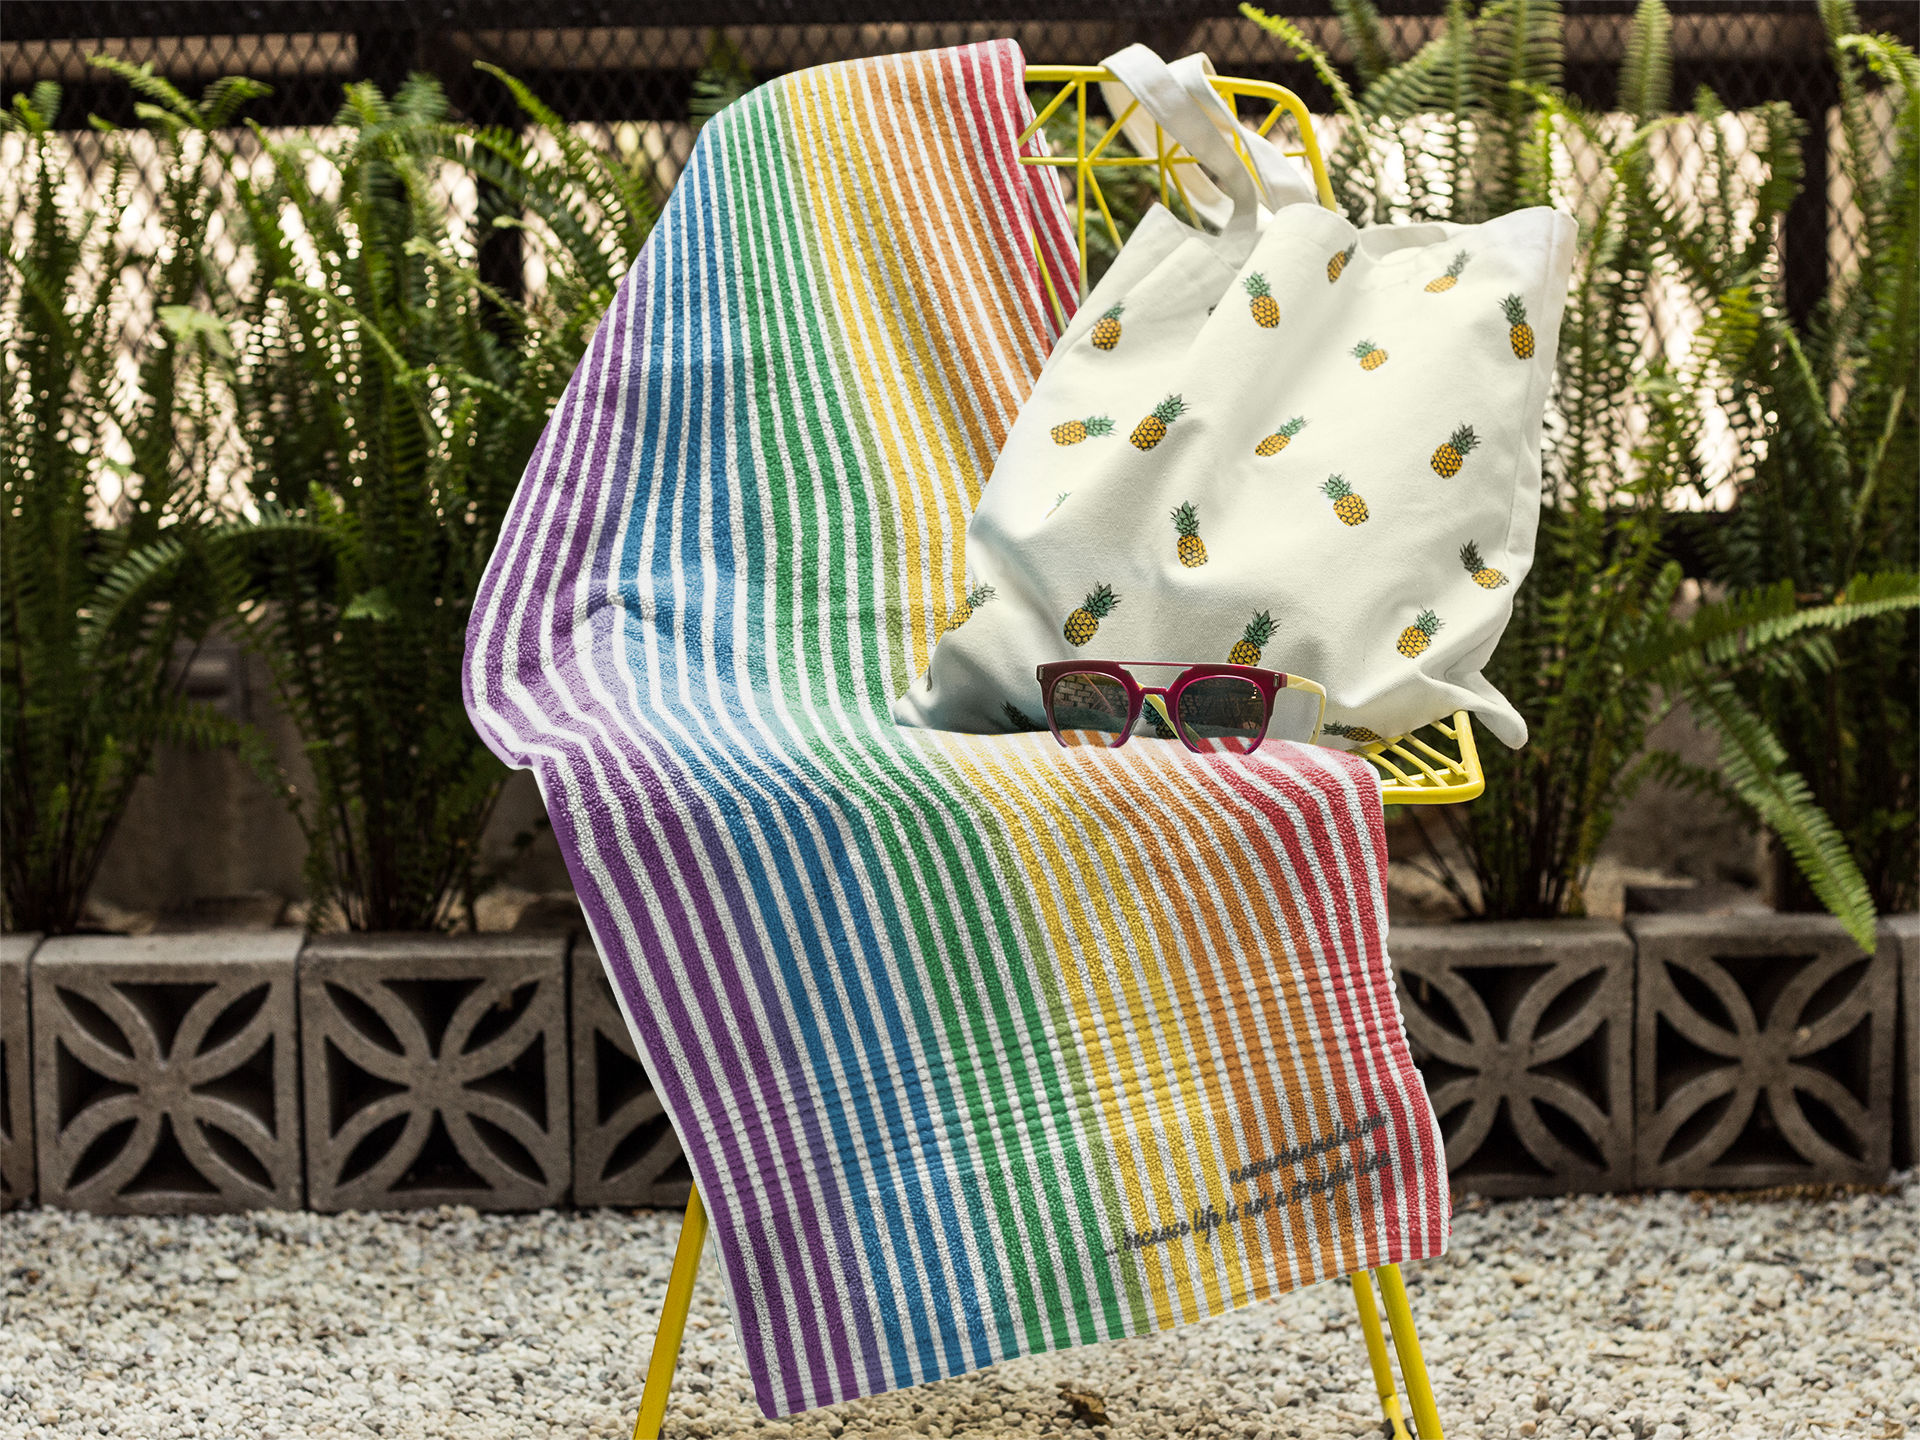 towel-mockup-on-a-chair-with-a-pineapple-printed-bag-and-sunglasses-lying-on-it-a14899 (3).png